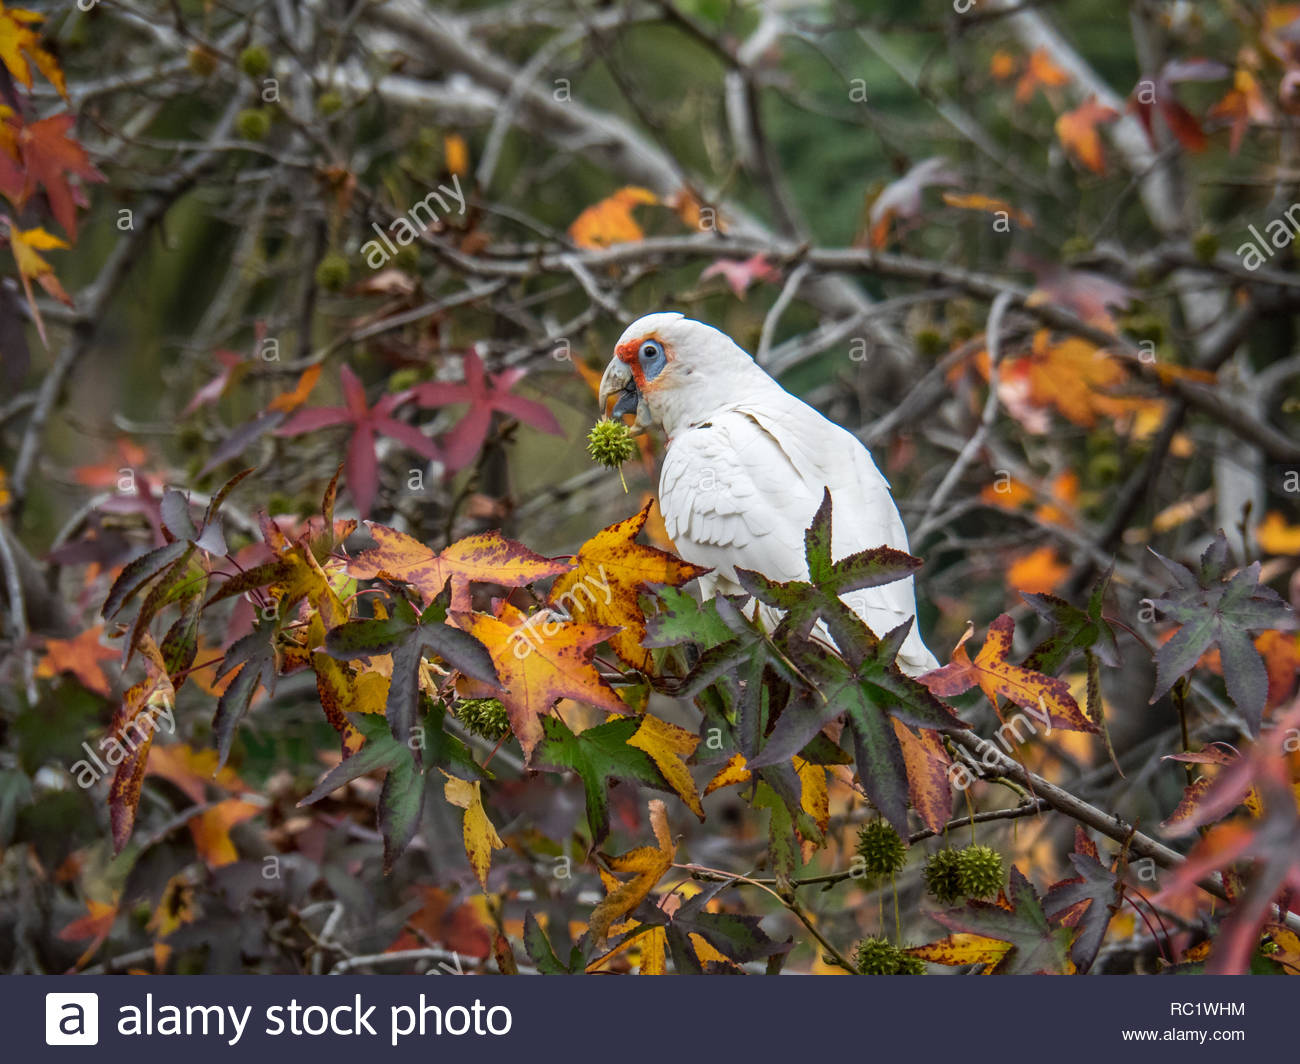 Corella eating seeds in trees, Melbourne, Vic - Stock Image